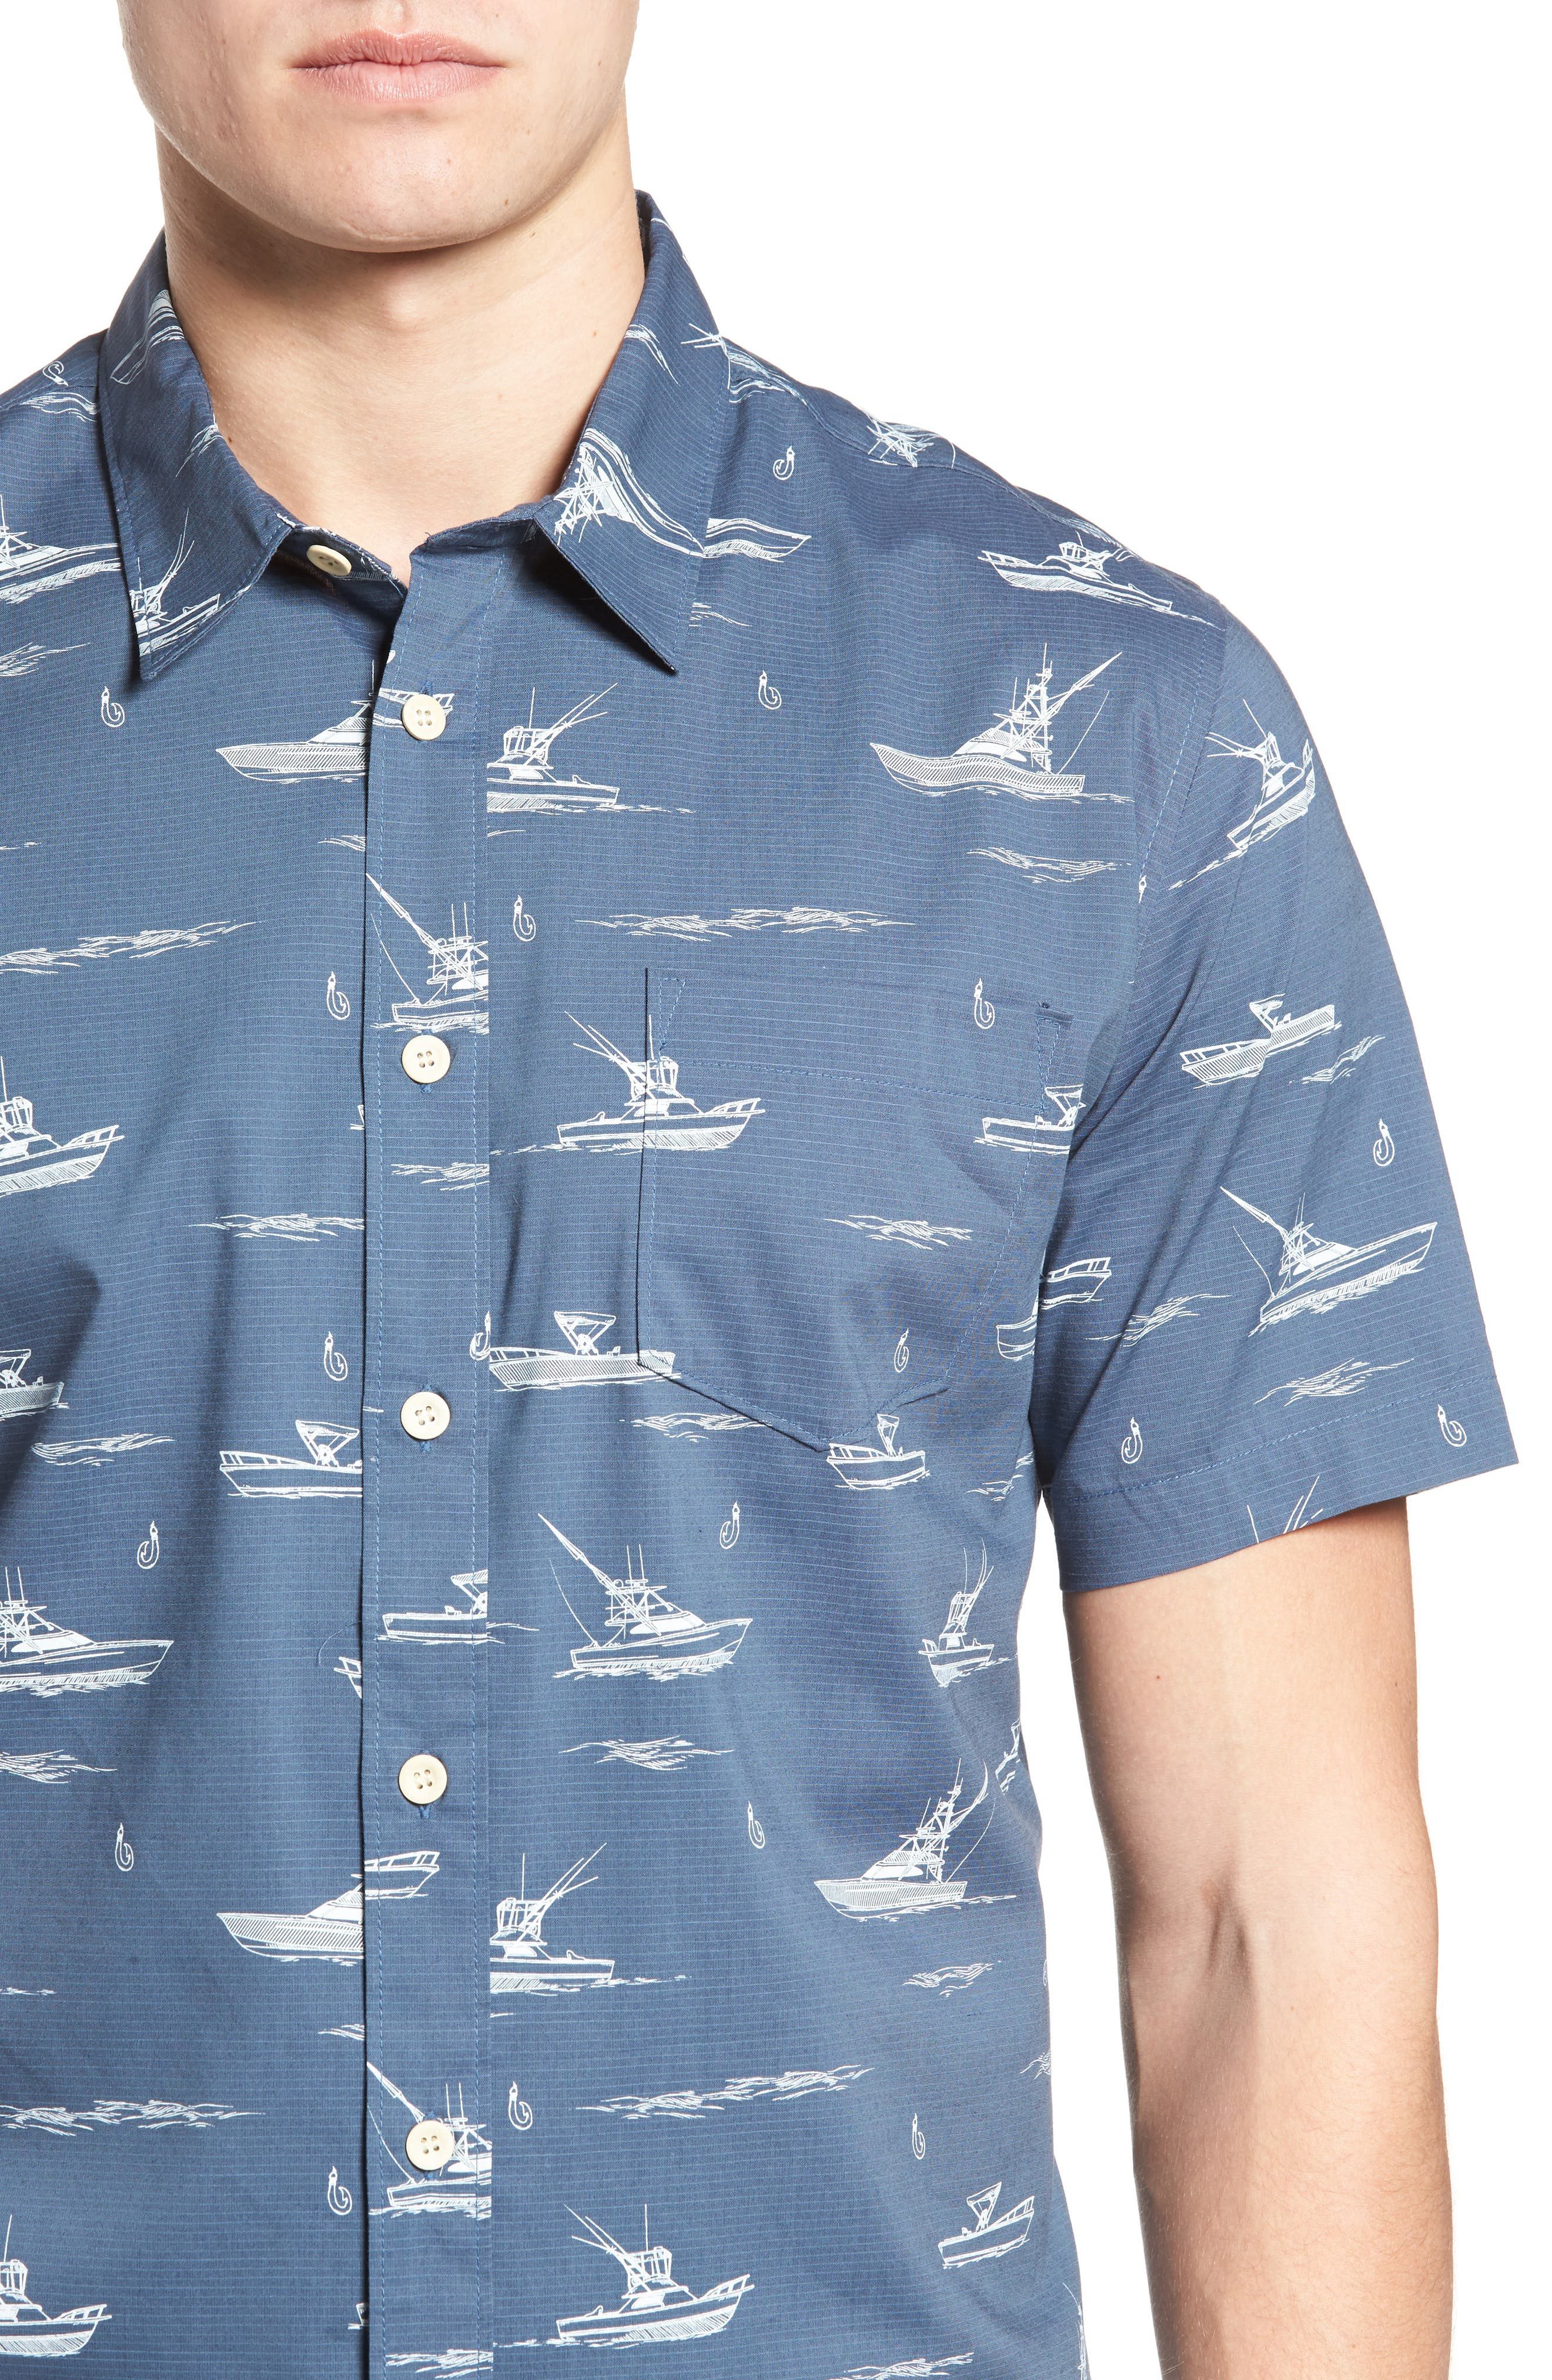 Fishboats Sport Shirt,                             Alternate thumbnail 4, color,                             Ensign Blue